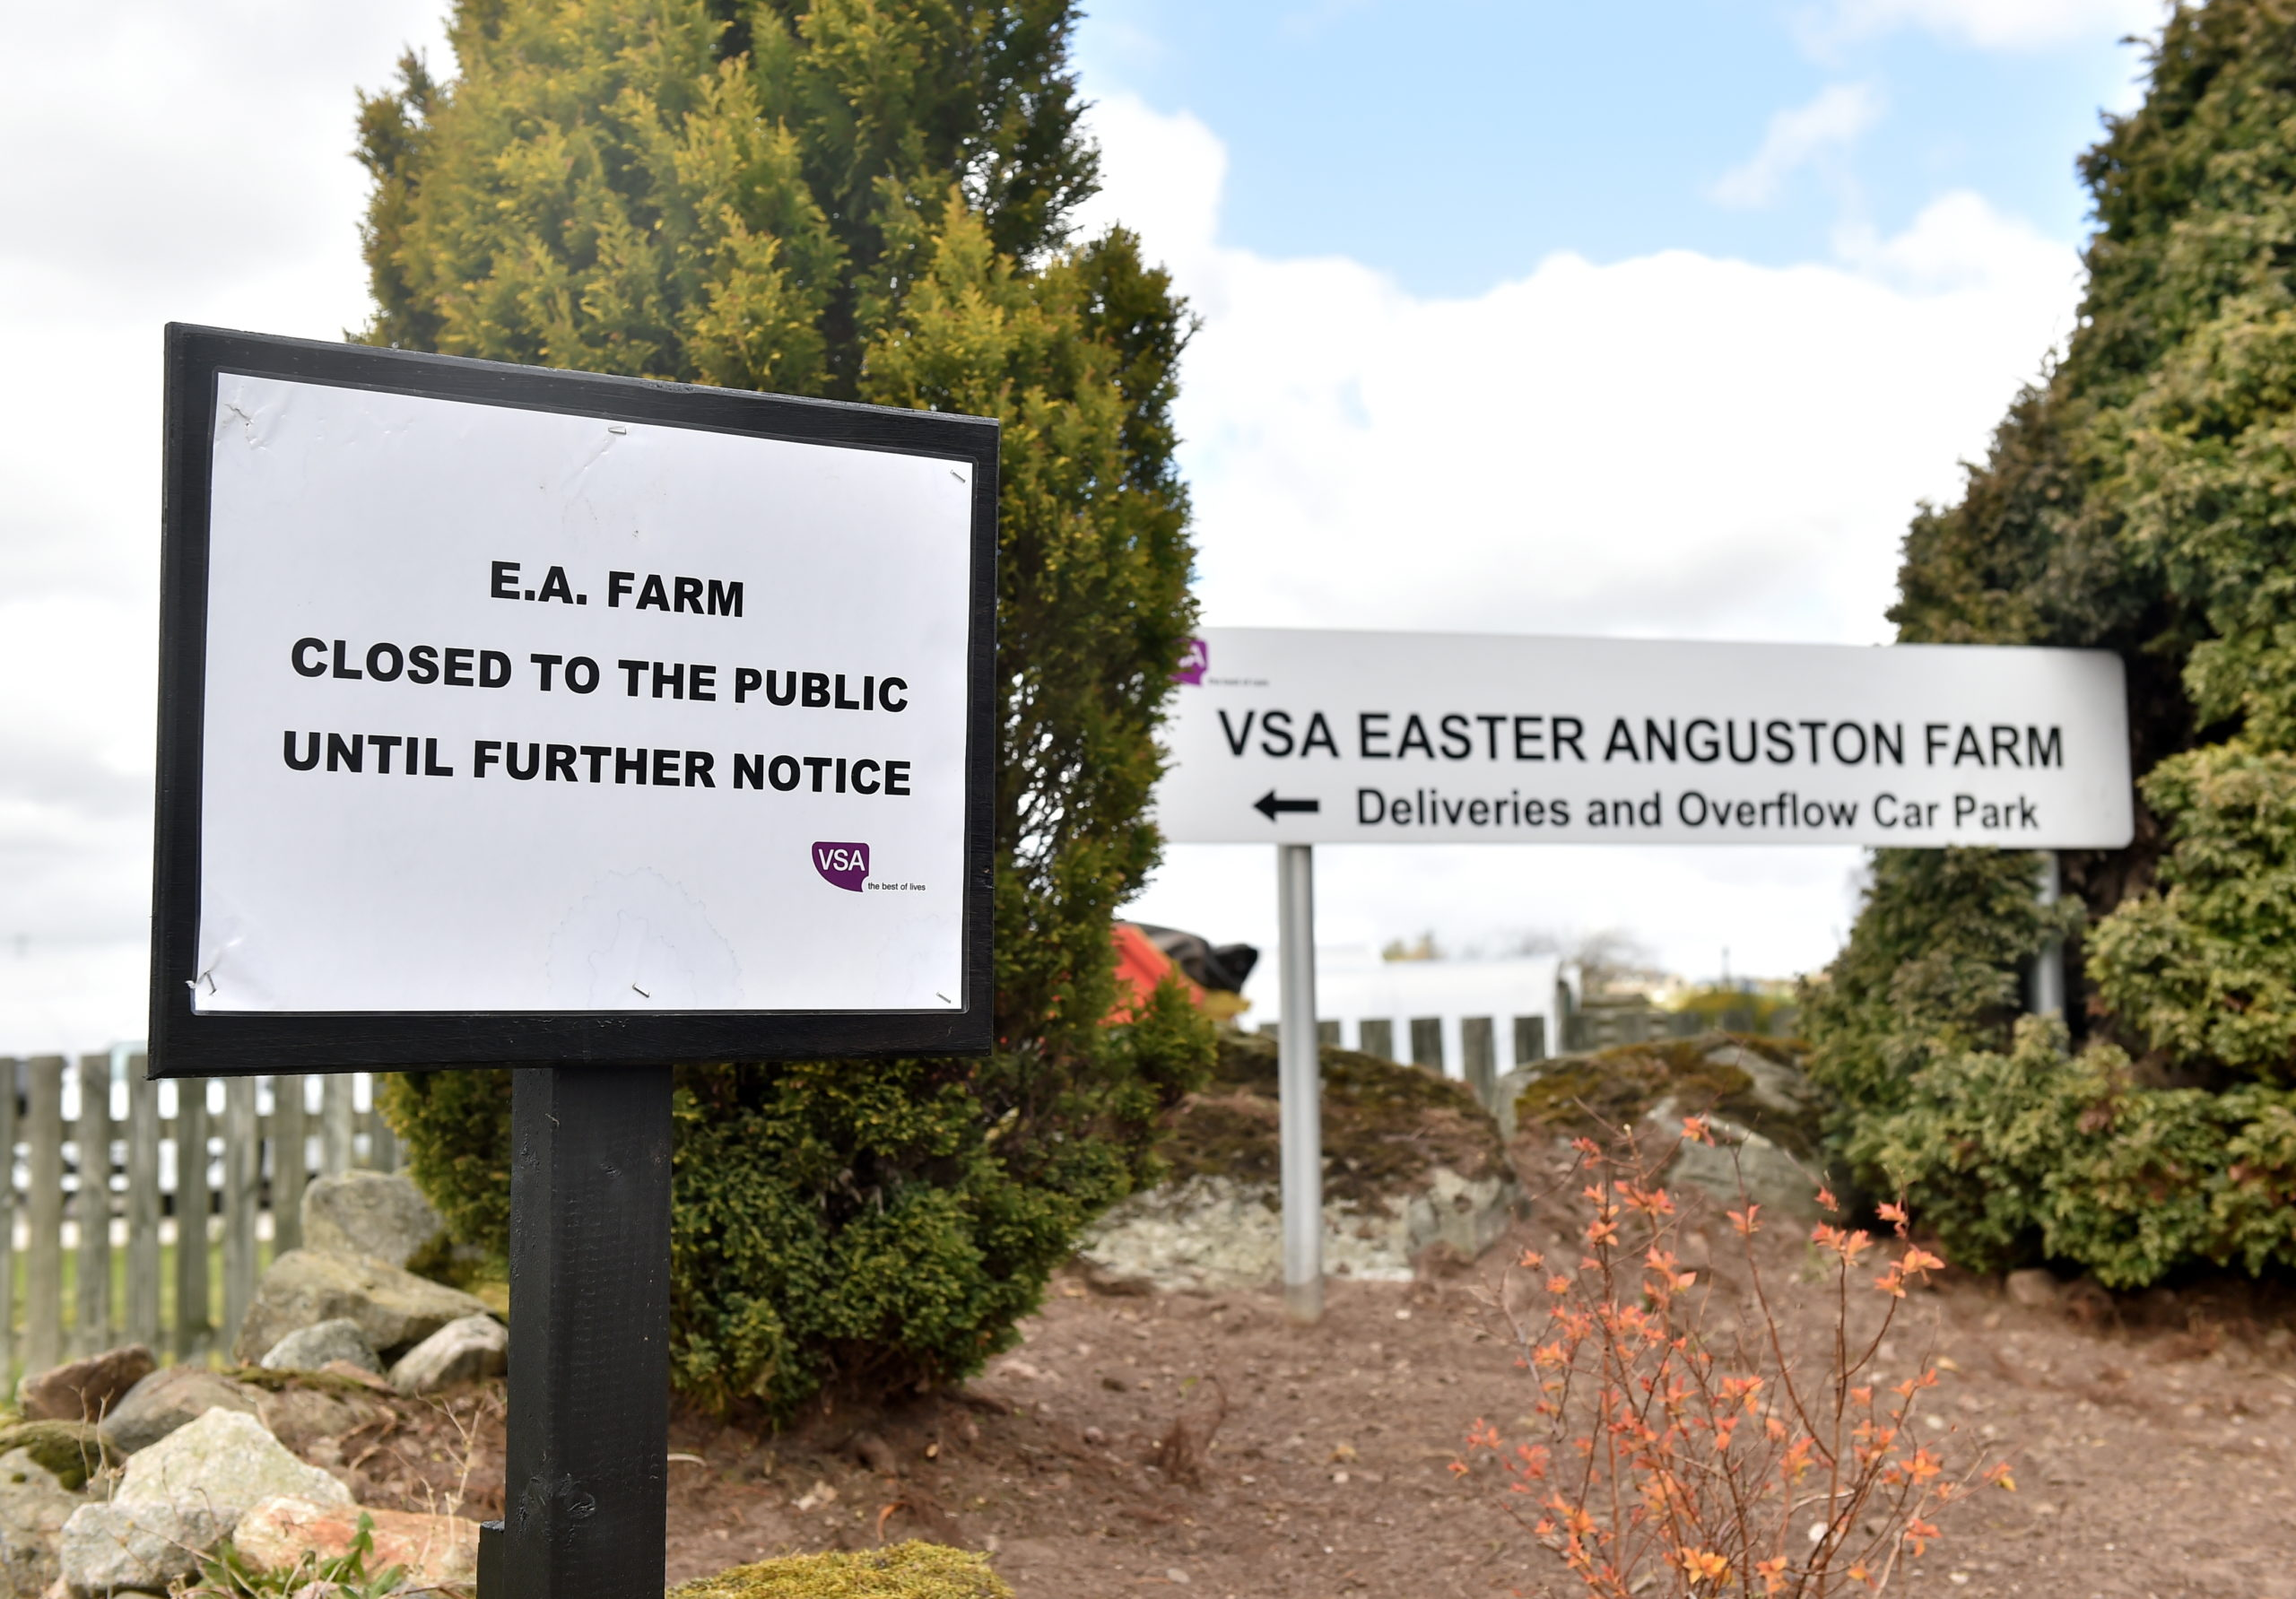 Easter Anguston Farm is aiming to reopen in September